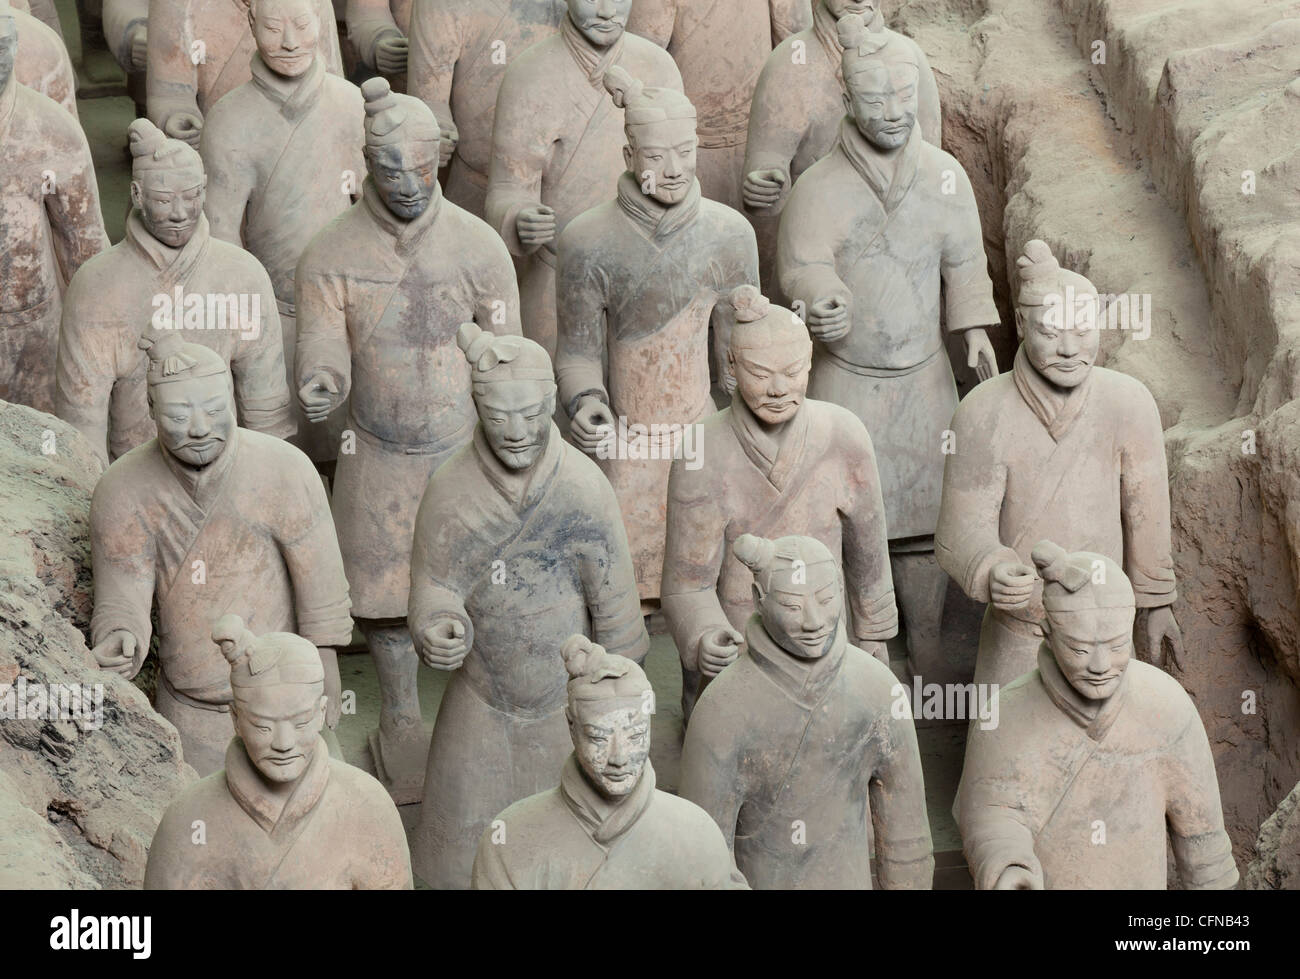 Terracotta Warriors Army, Pit Number 1, Xian, Shaanxi Province, China, Asia - Stock Image